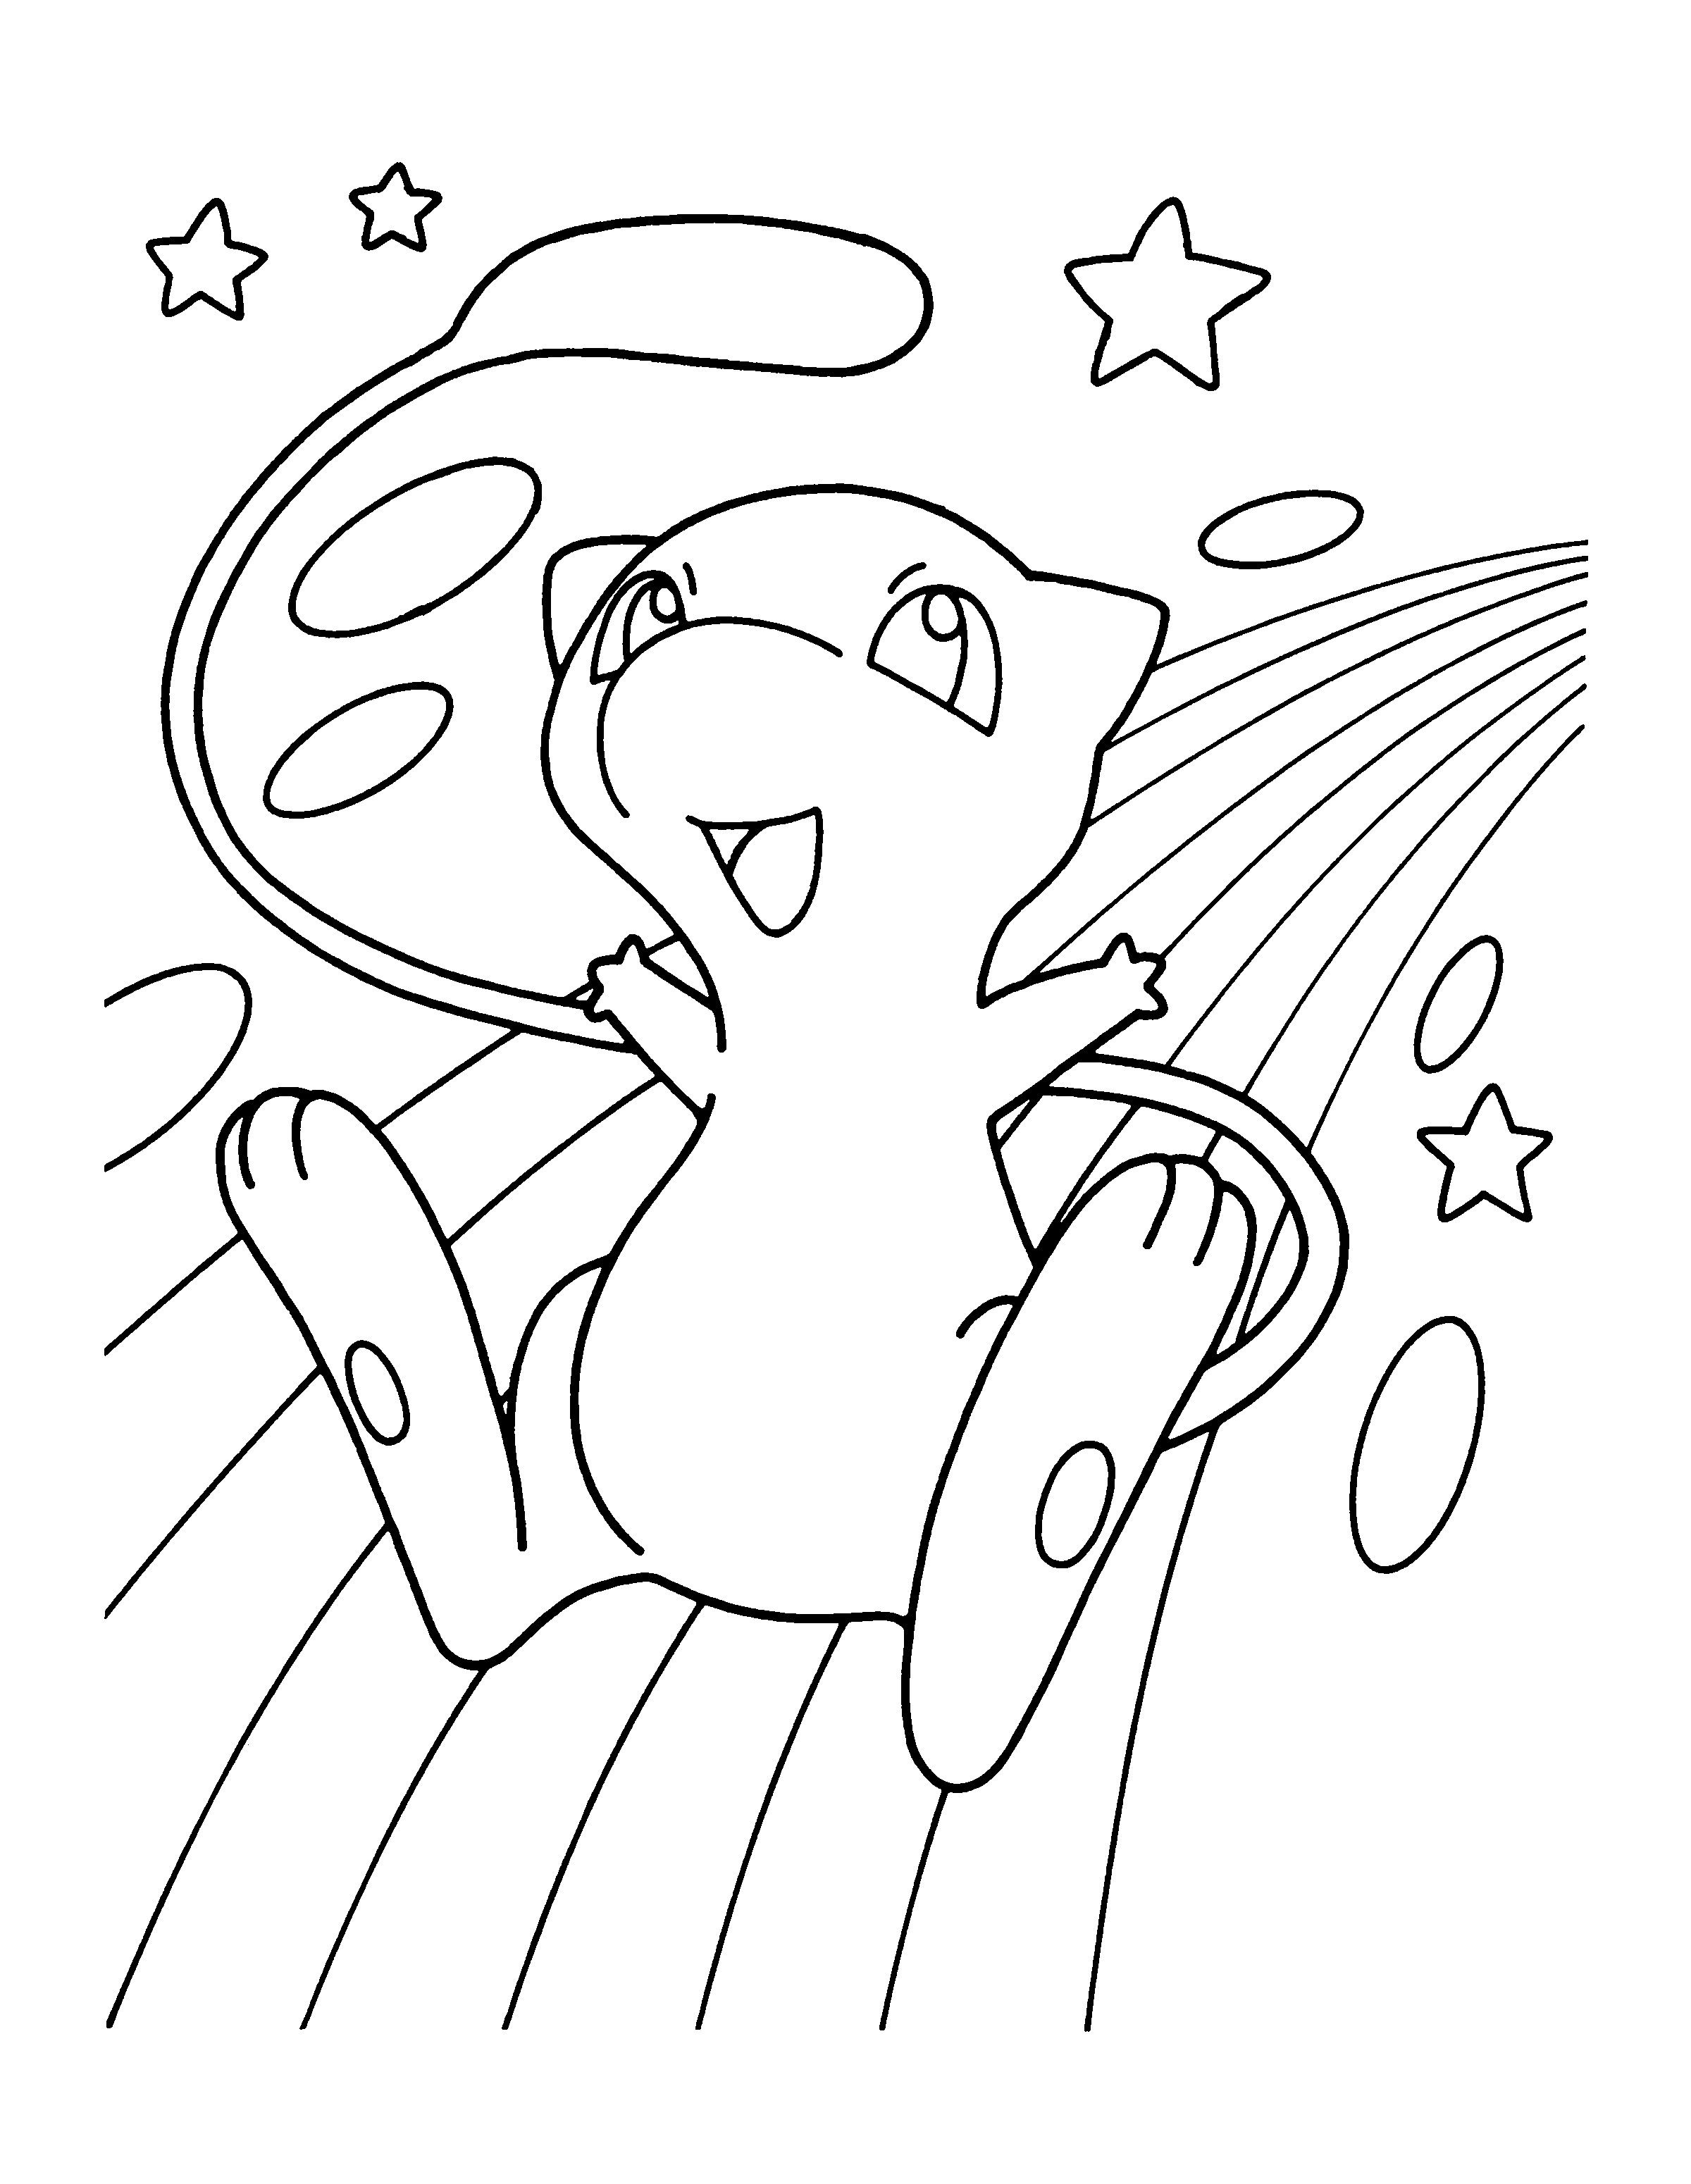 Legendary Pokemon Coloring Pages New Pokemon Horses Coloring Pages